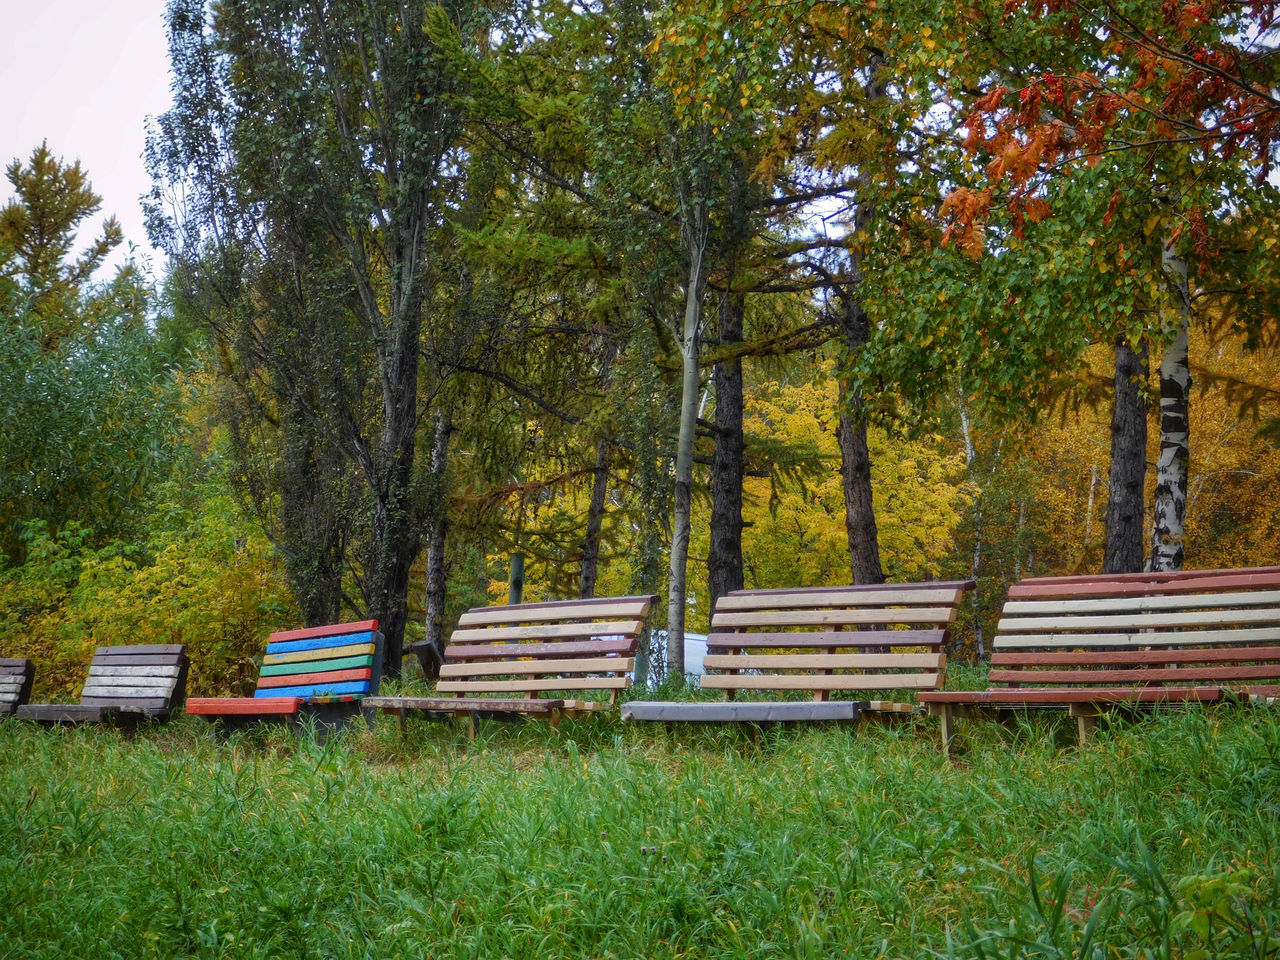 Beauty In Nature Bench Day Empty Grass Green Green Color Growth Nature No People Non-urban Scene Outdoors Park - Man Made Space Park Bench Plant Scenics Solitude EyeEm Diversity Tall - High Tranquil Scene Tranquility Tree Tree Trunk WoodLand Beautifully Organized